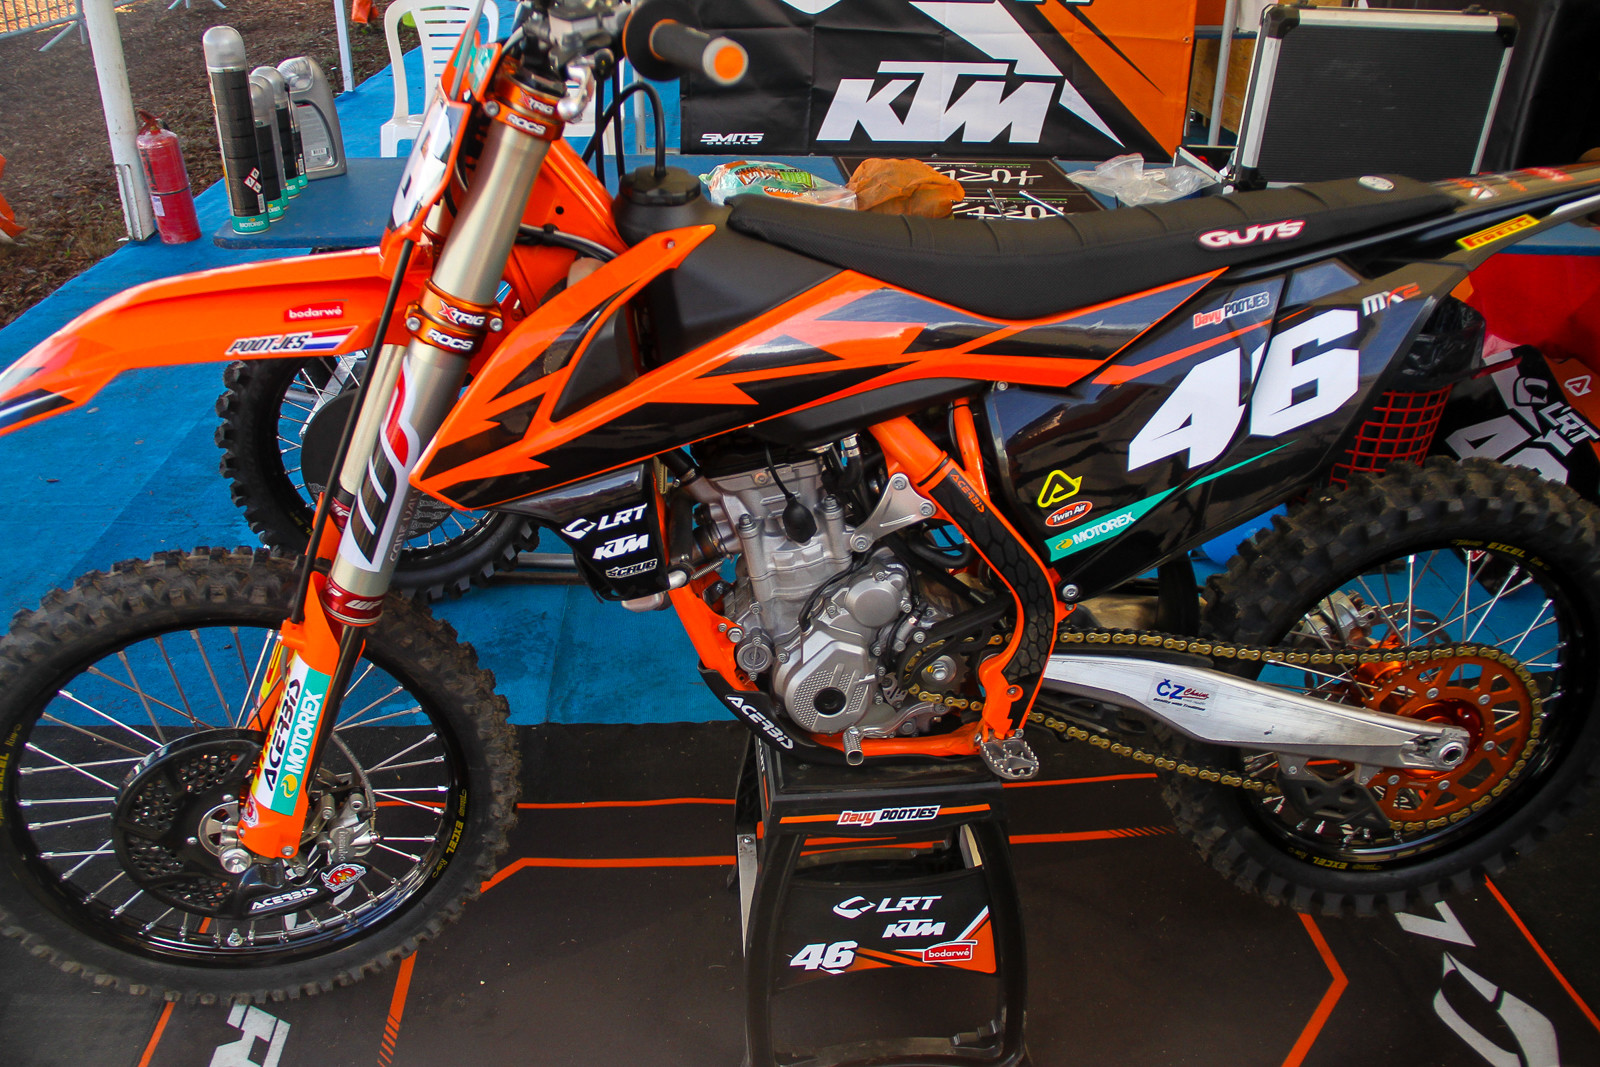 Although Lieber has moved onto MXGP, his team LRT (Lieber Racing Team) is still around and supporting Davey Pootjes in MX2 on KTMs...Pootjes career path has left us scratching our heads.